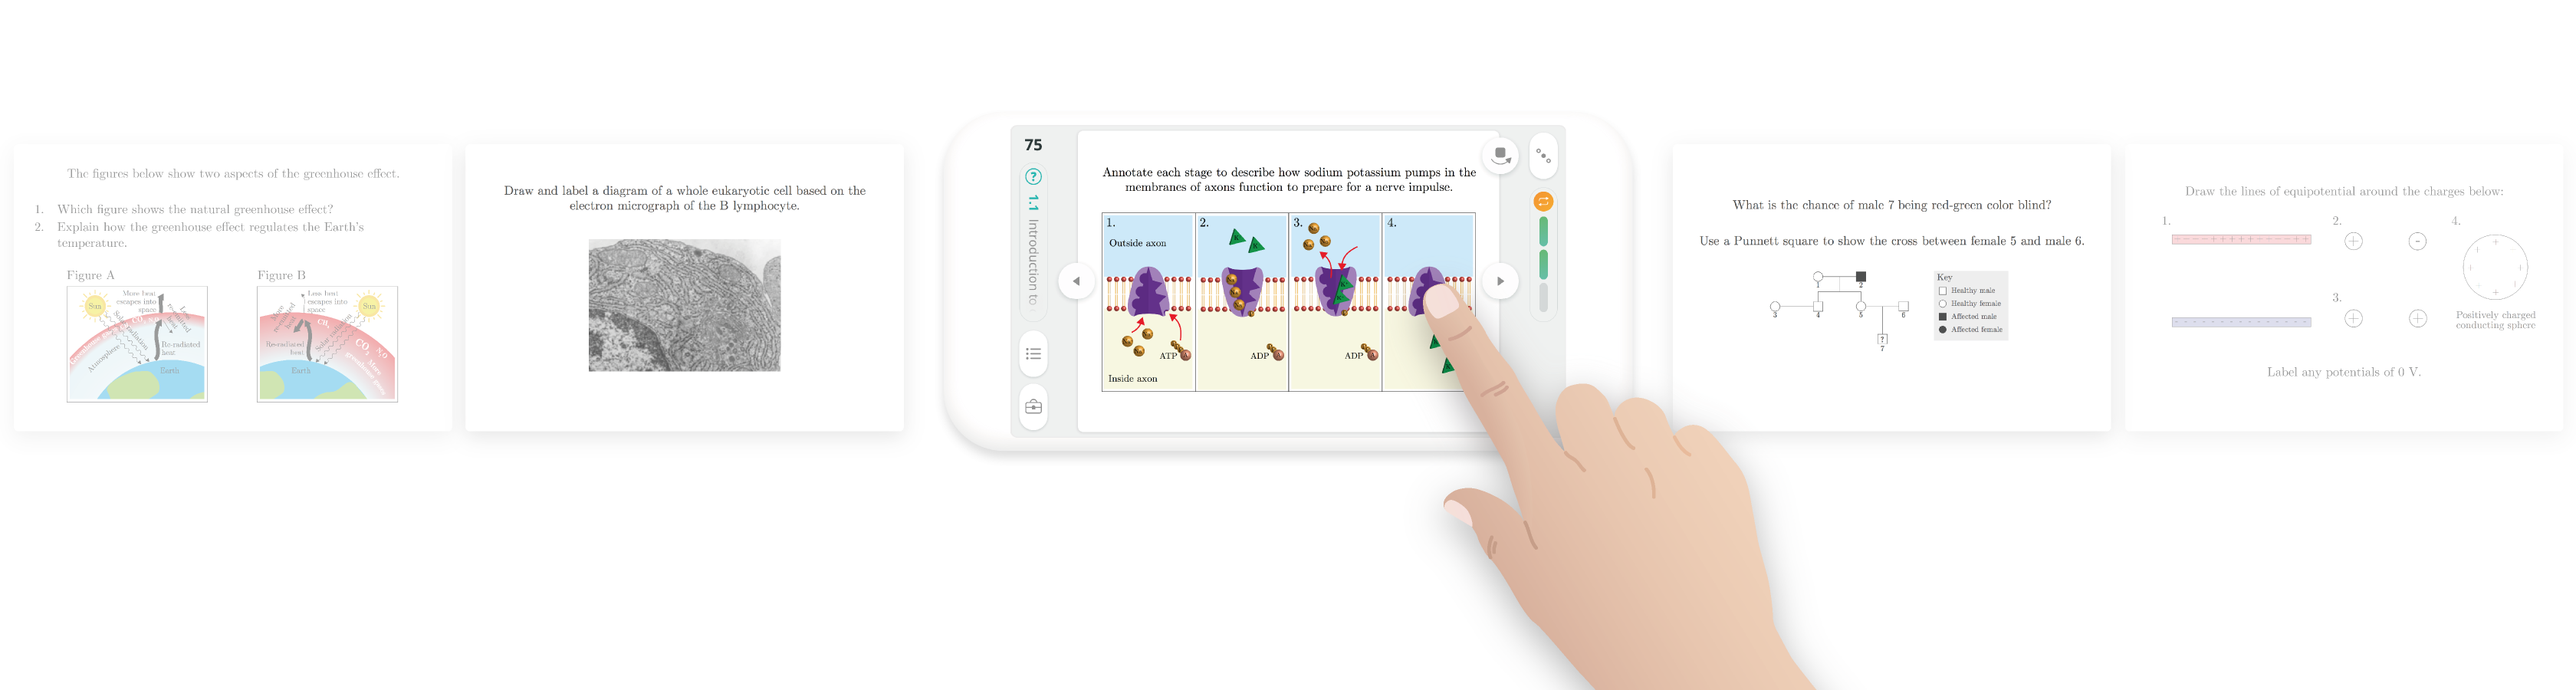 Smartprep Ib App Annotate The Diagram Of A Eukaryotic Cell With Functions Thousands Question Cards Add Up To Full Coverage Sl And Hl Each Card Is Kernel Essential Knowledge Swipe Through Them For Concise Explanations